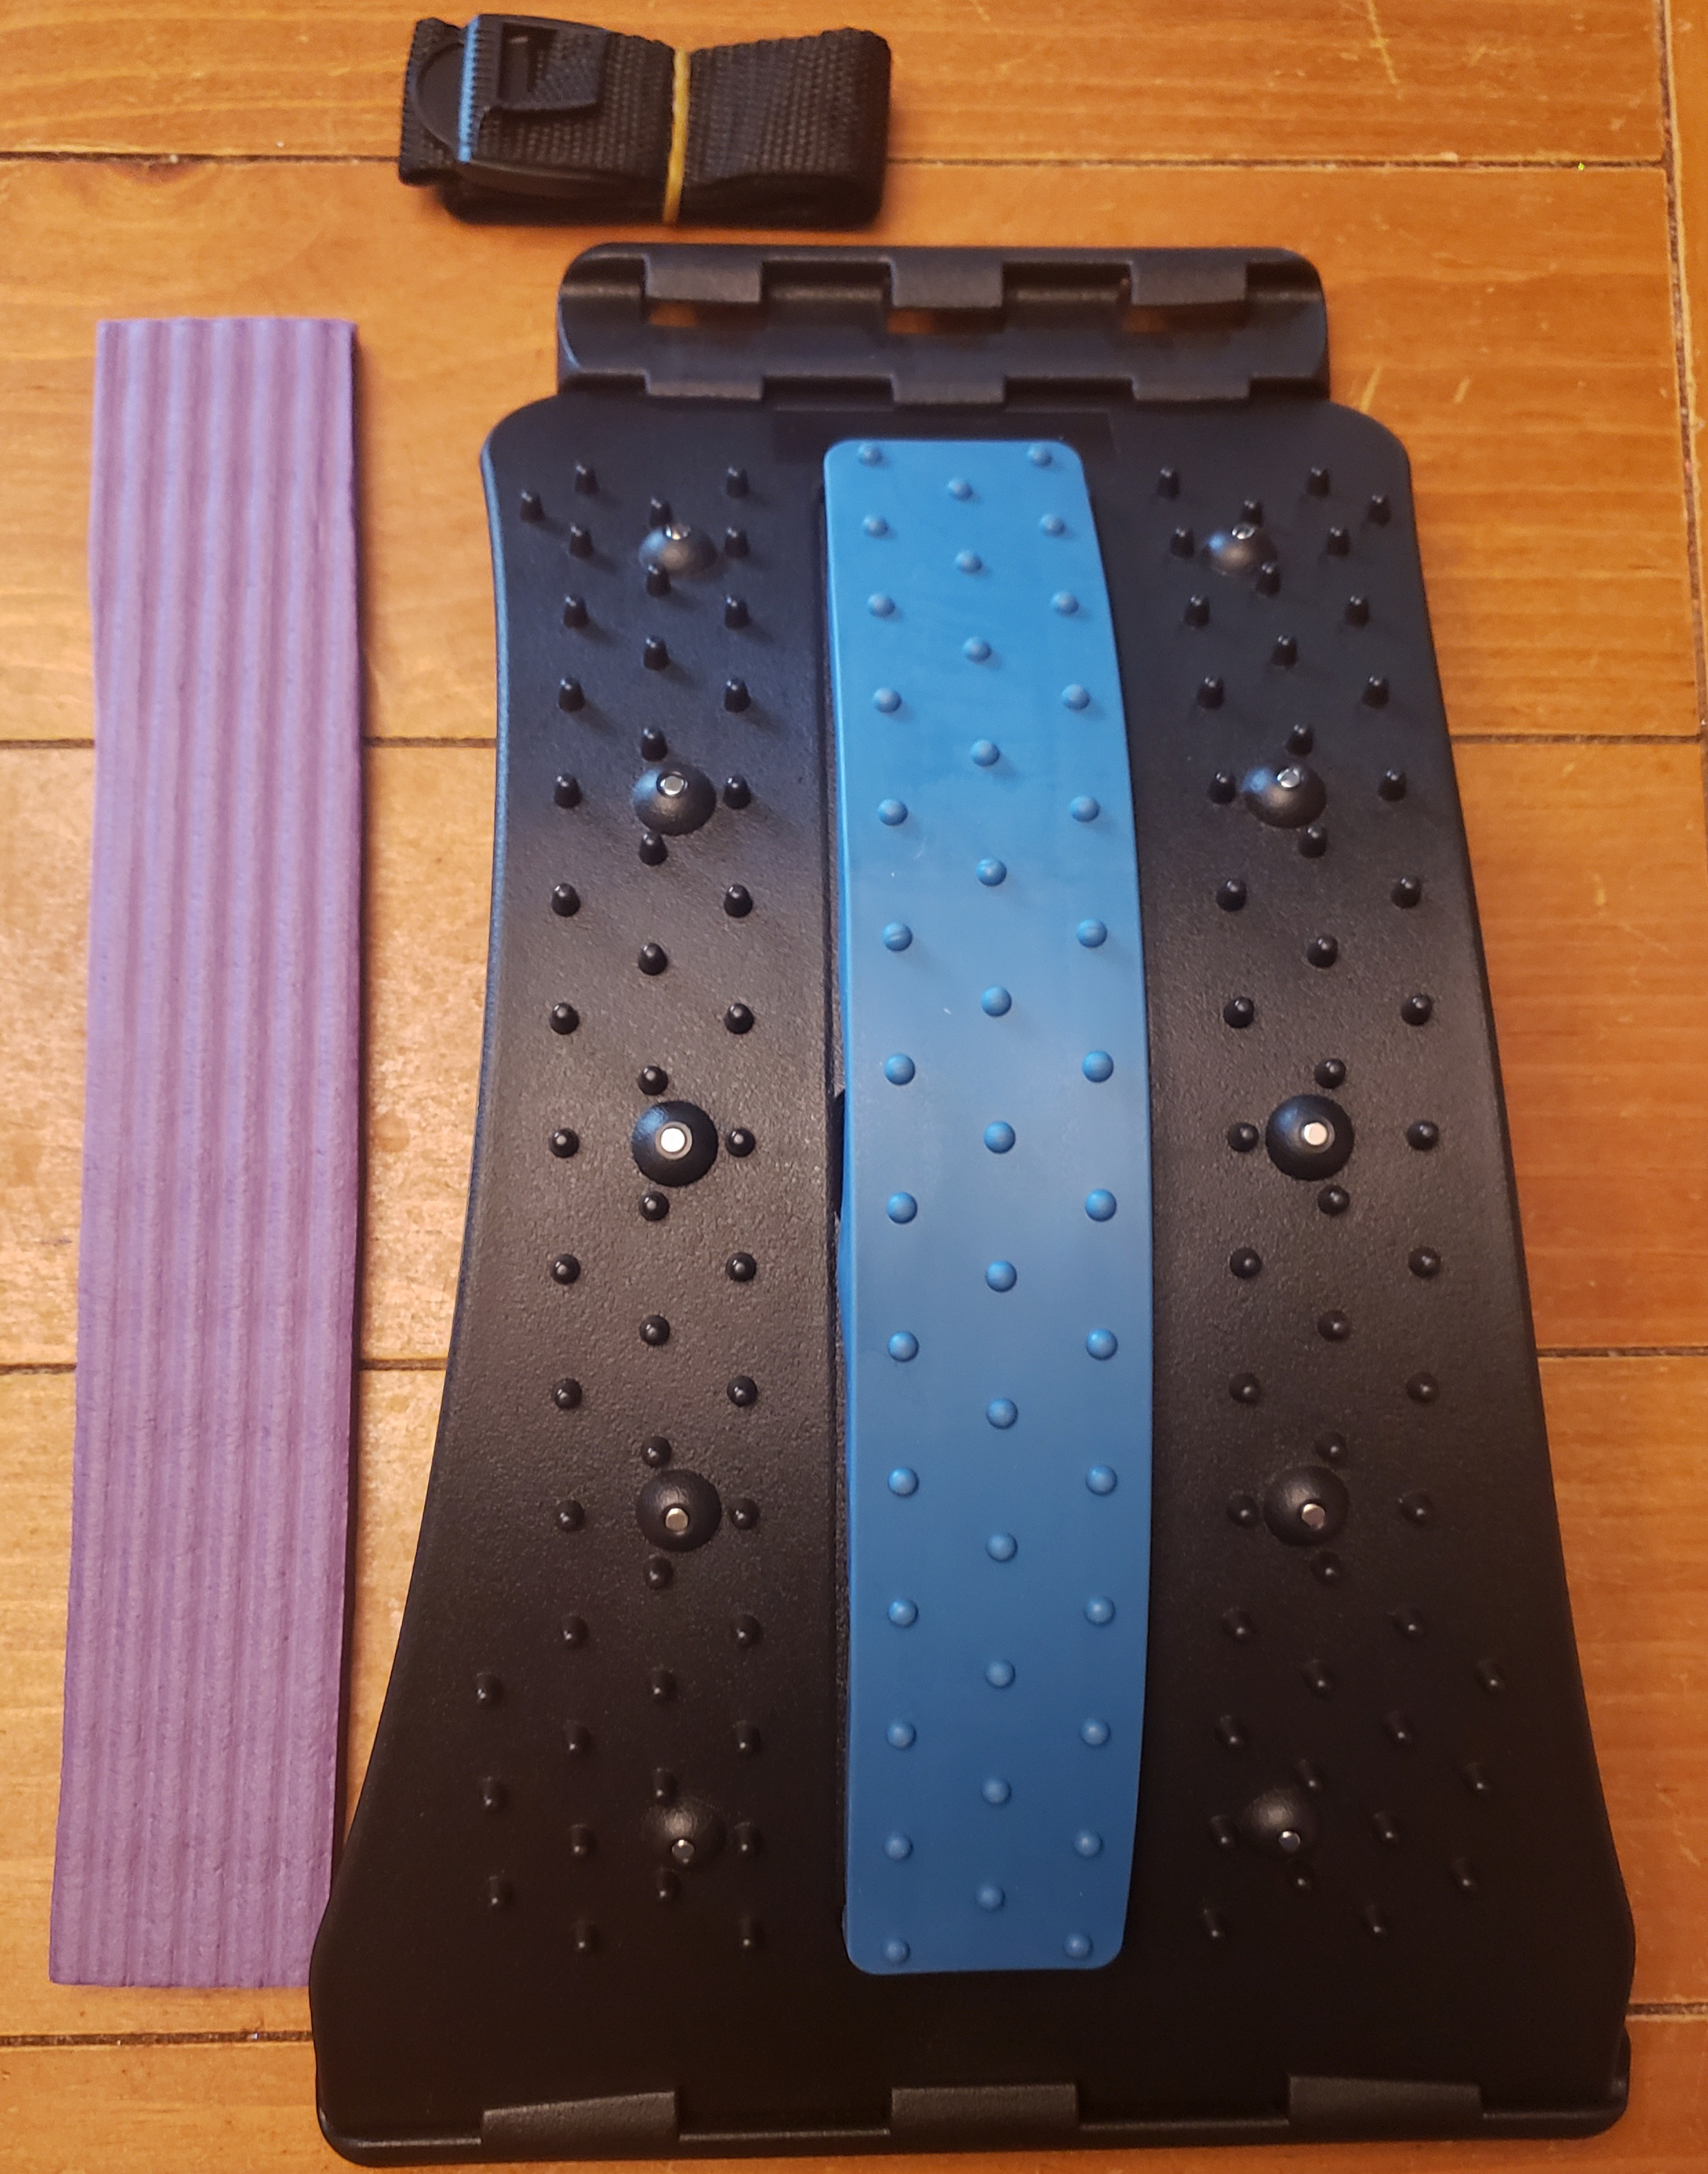 Great product to improve posture, flexibility and relieve chronic back pain!